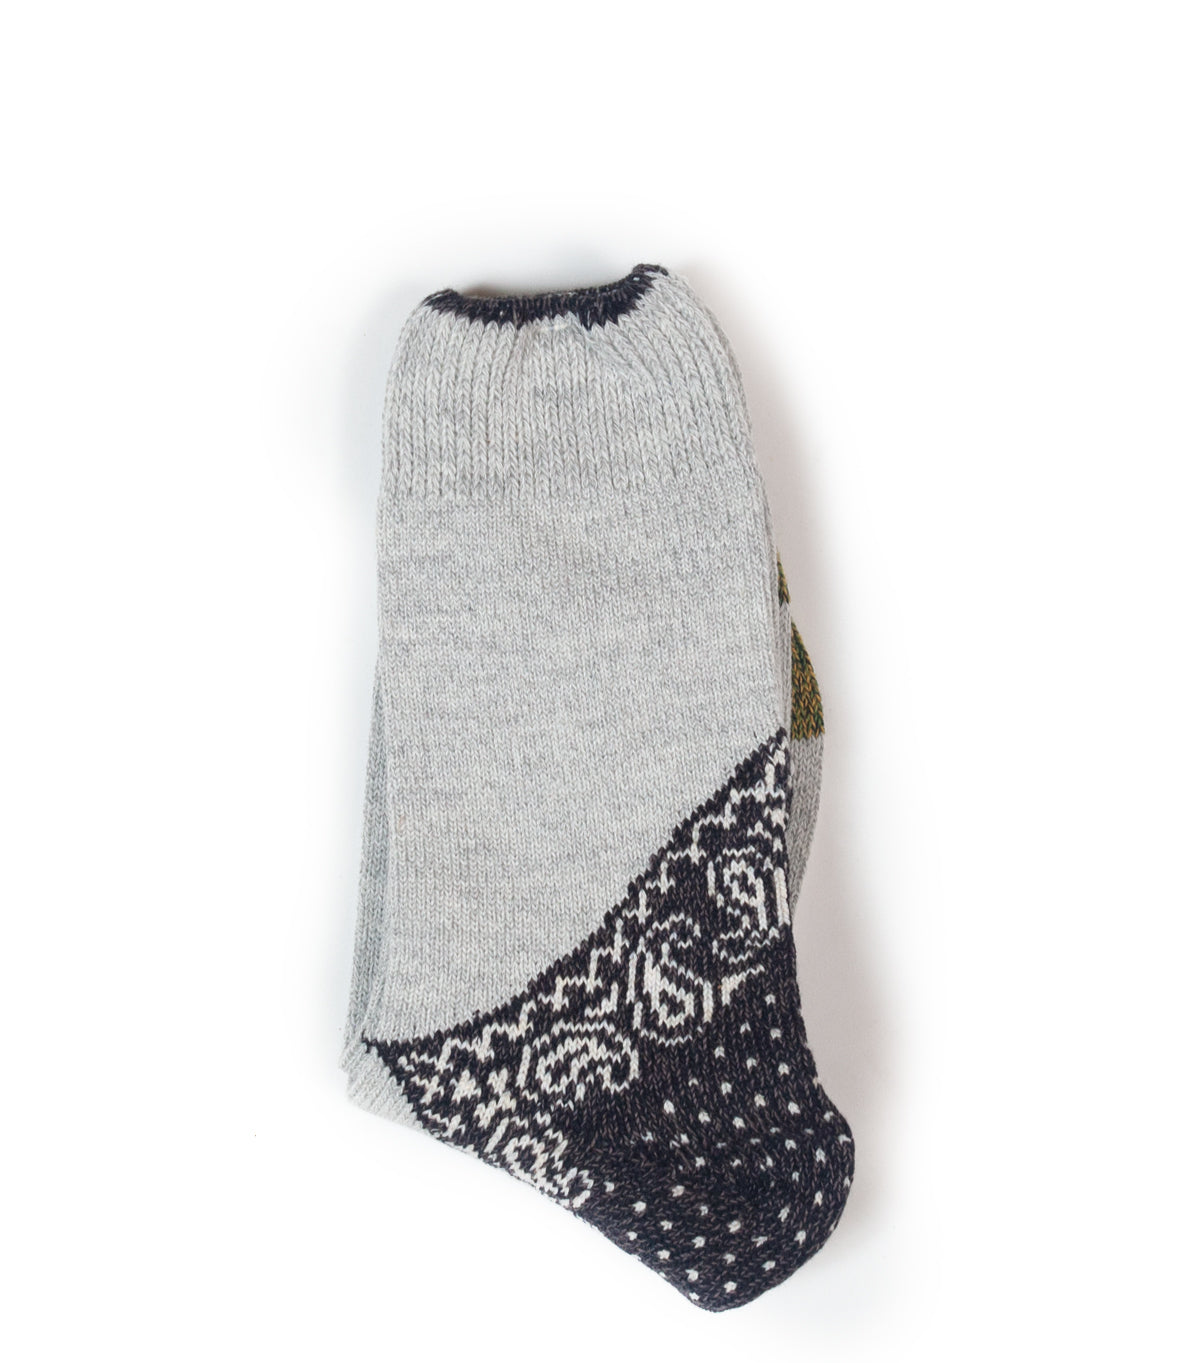 KAPITAL 72 YARNS WOOL IVY SMILIE SOCKS NAVY